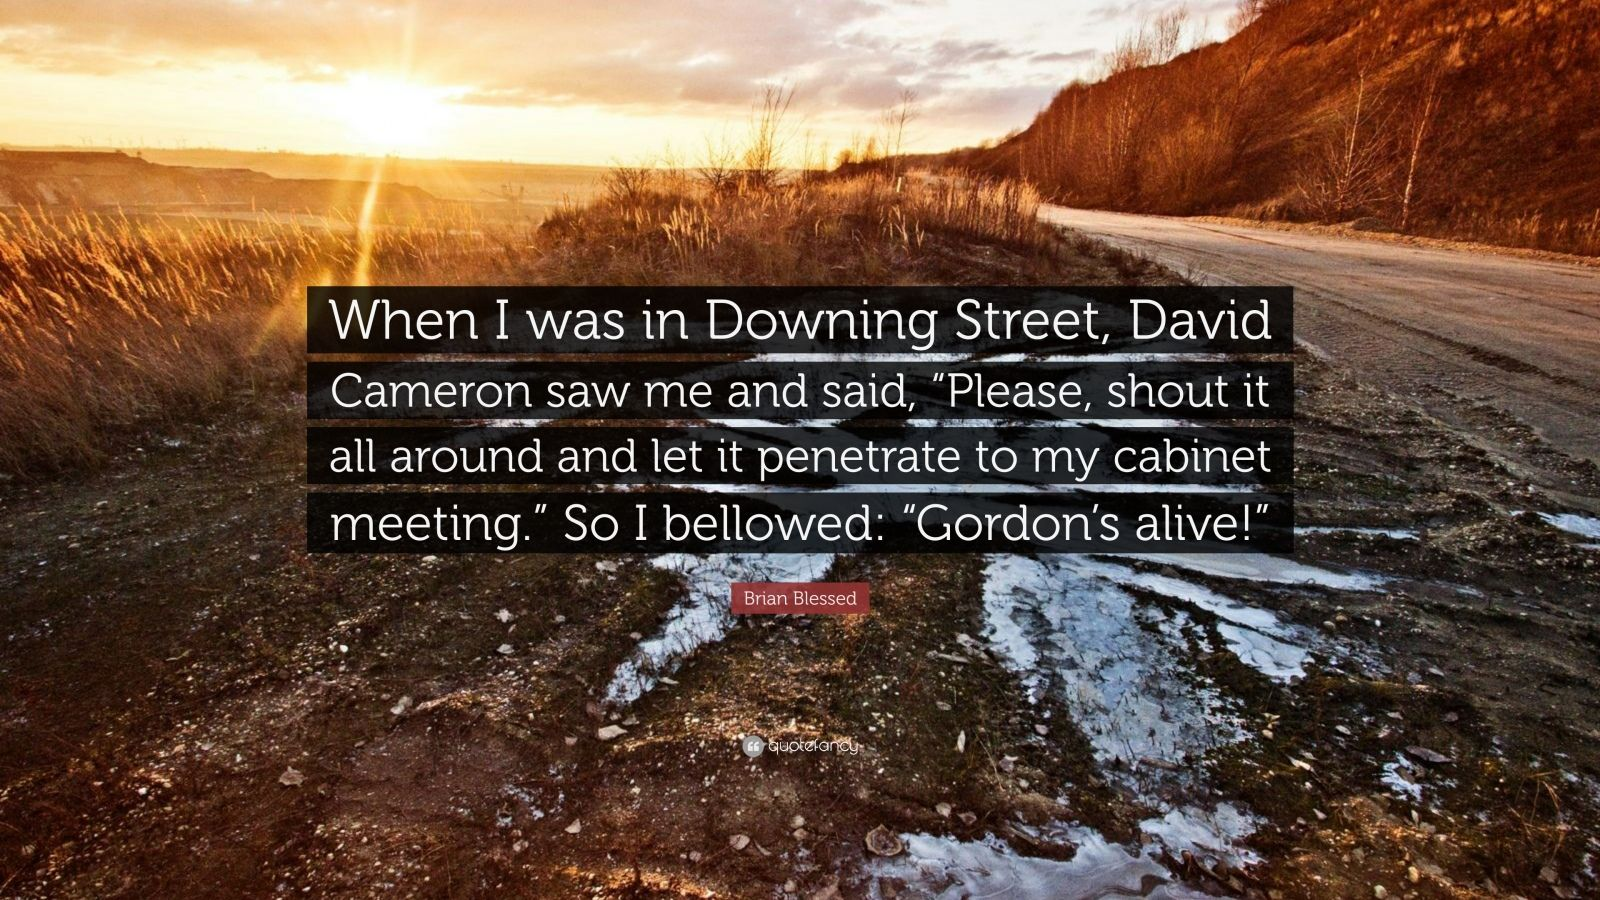 """Brian Blessed Quote: """"When I was in Downing Street, David Cameron saw me and said, """"Please, shout it all around and let it penetrate to my cabinet meeting."""" So I bellowed: """"Gordon's alive!"""""""""""